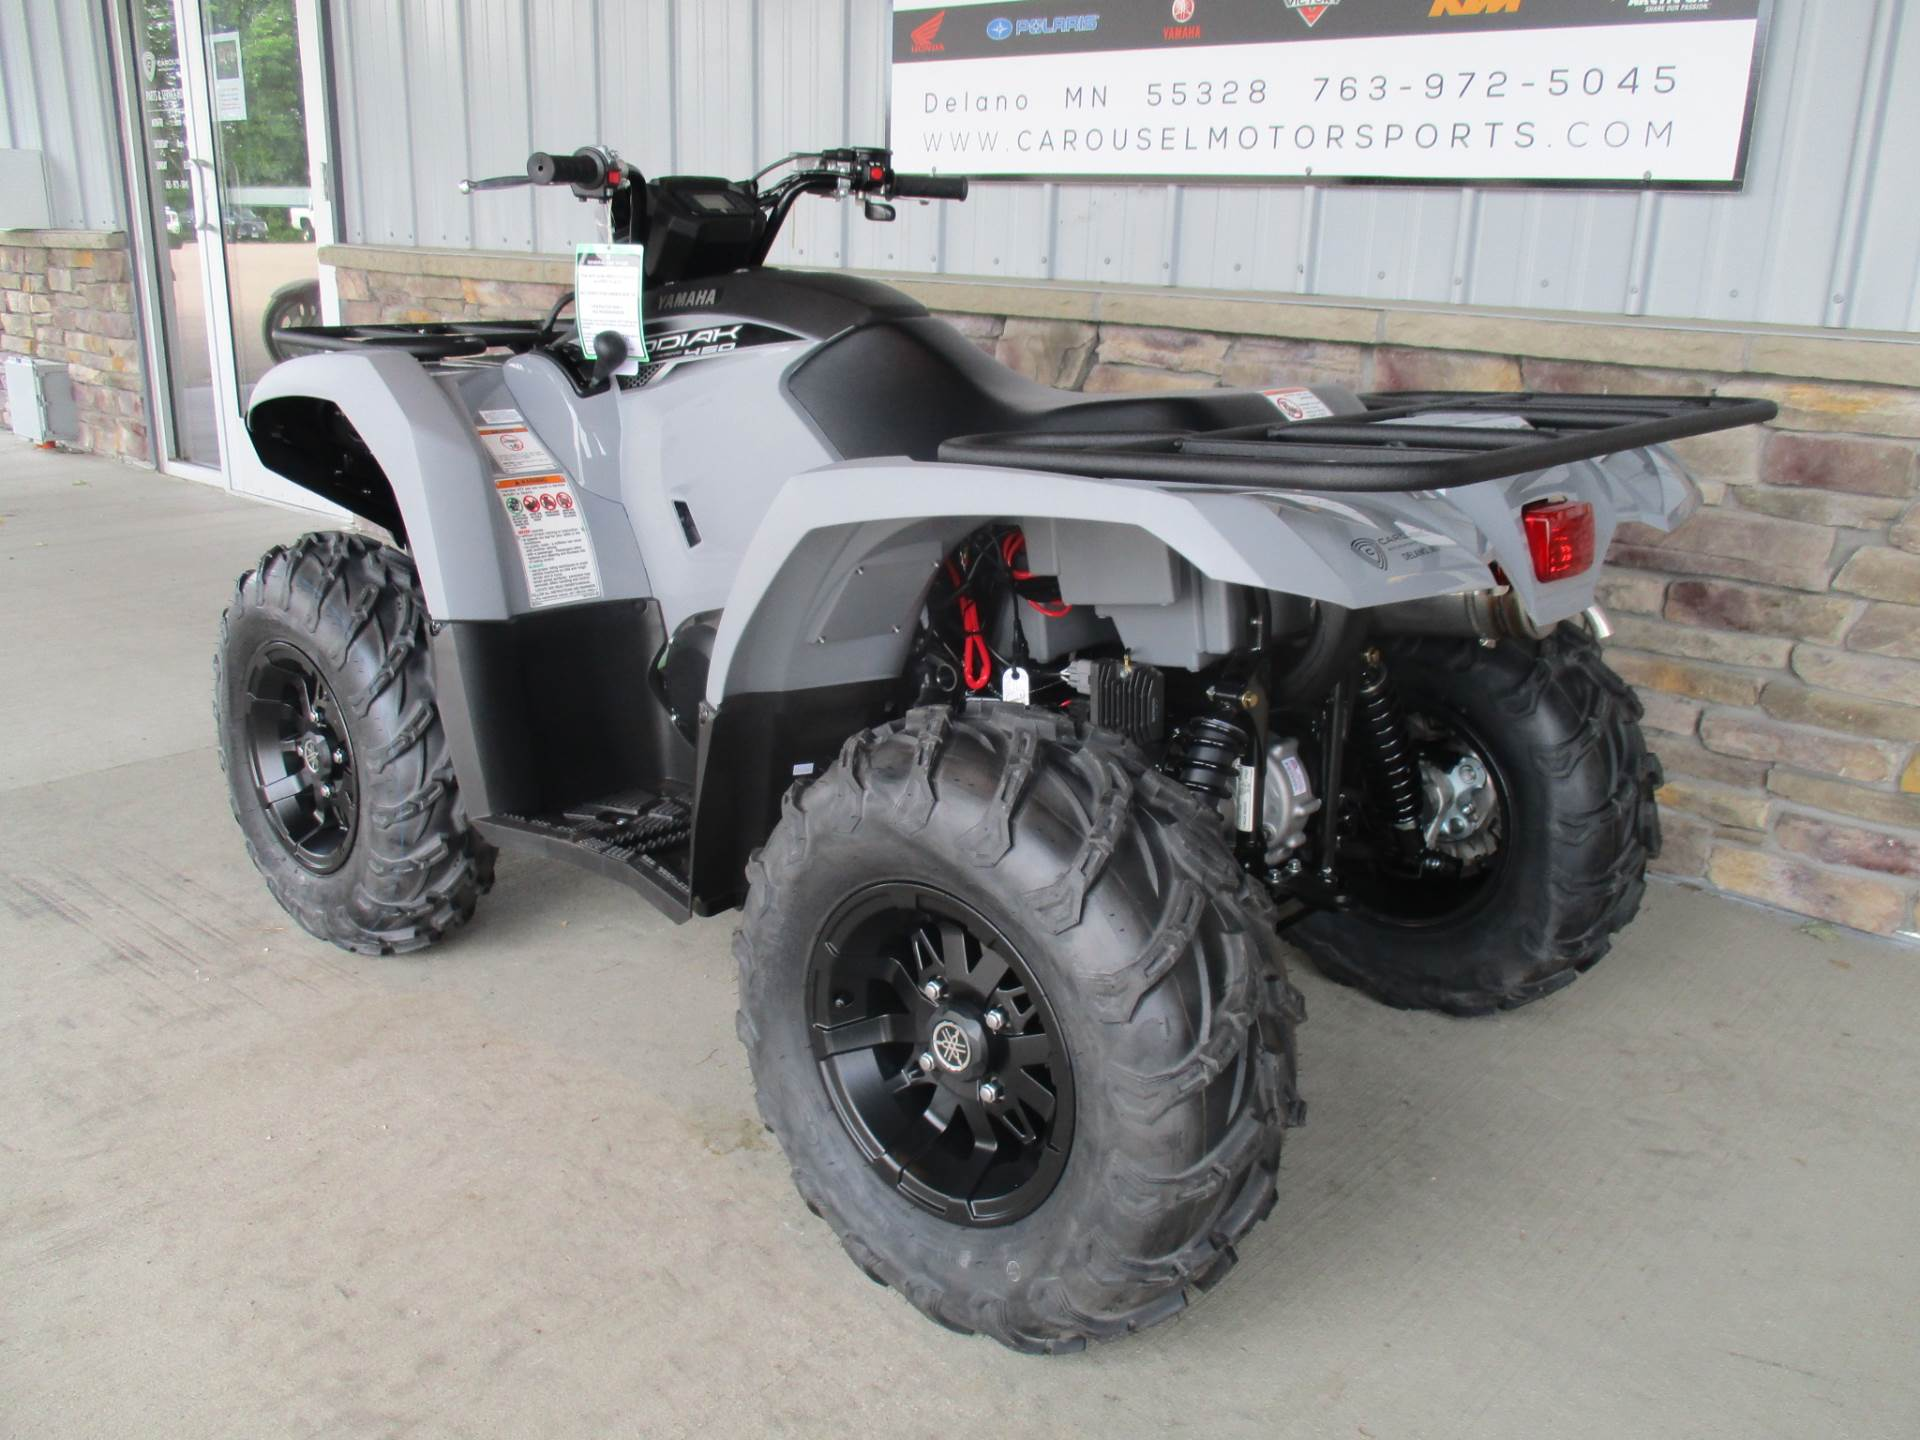 2018 Yamaha Kodiak 450 EPS in Delano, Minnesota